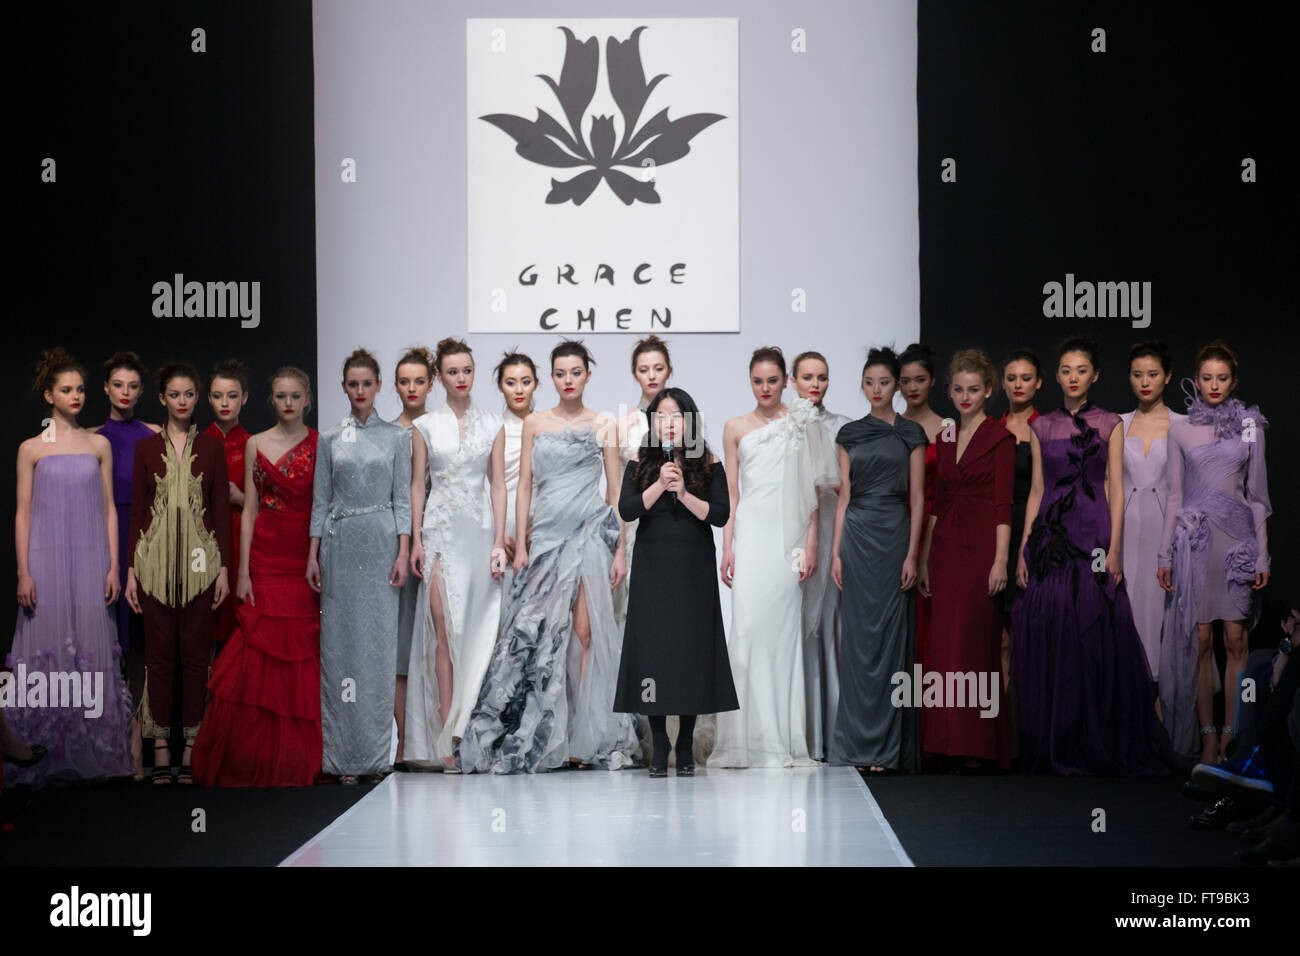 Moscow. 25th Mar, 2016. Chinese designer Grace Chen (C) acknowledges the applause at the end of the Moscow Fashion - Stock Image